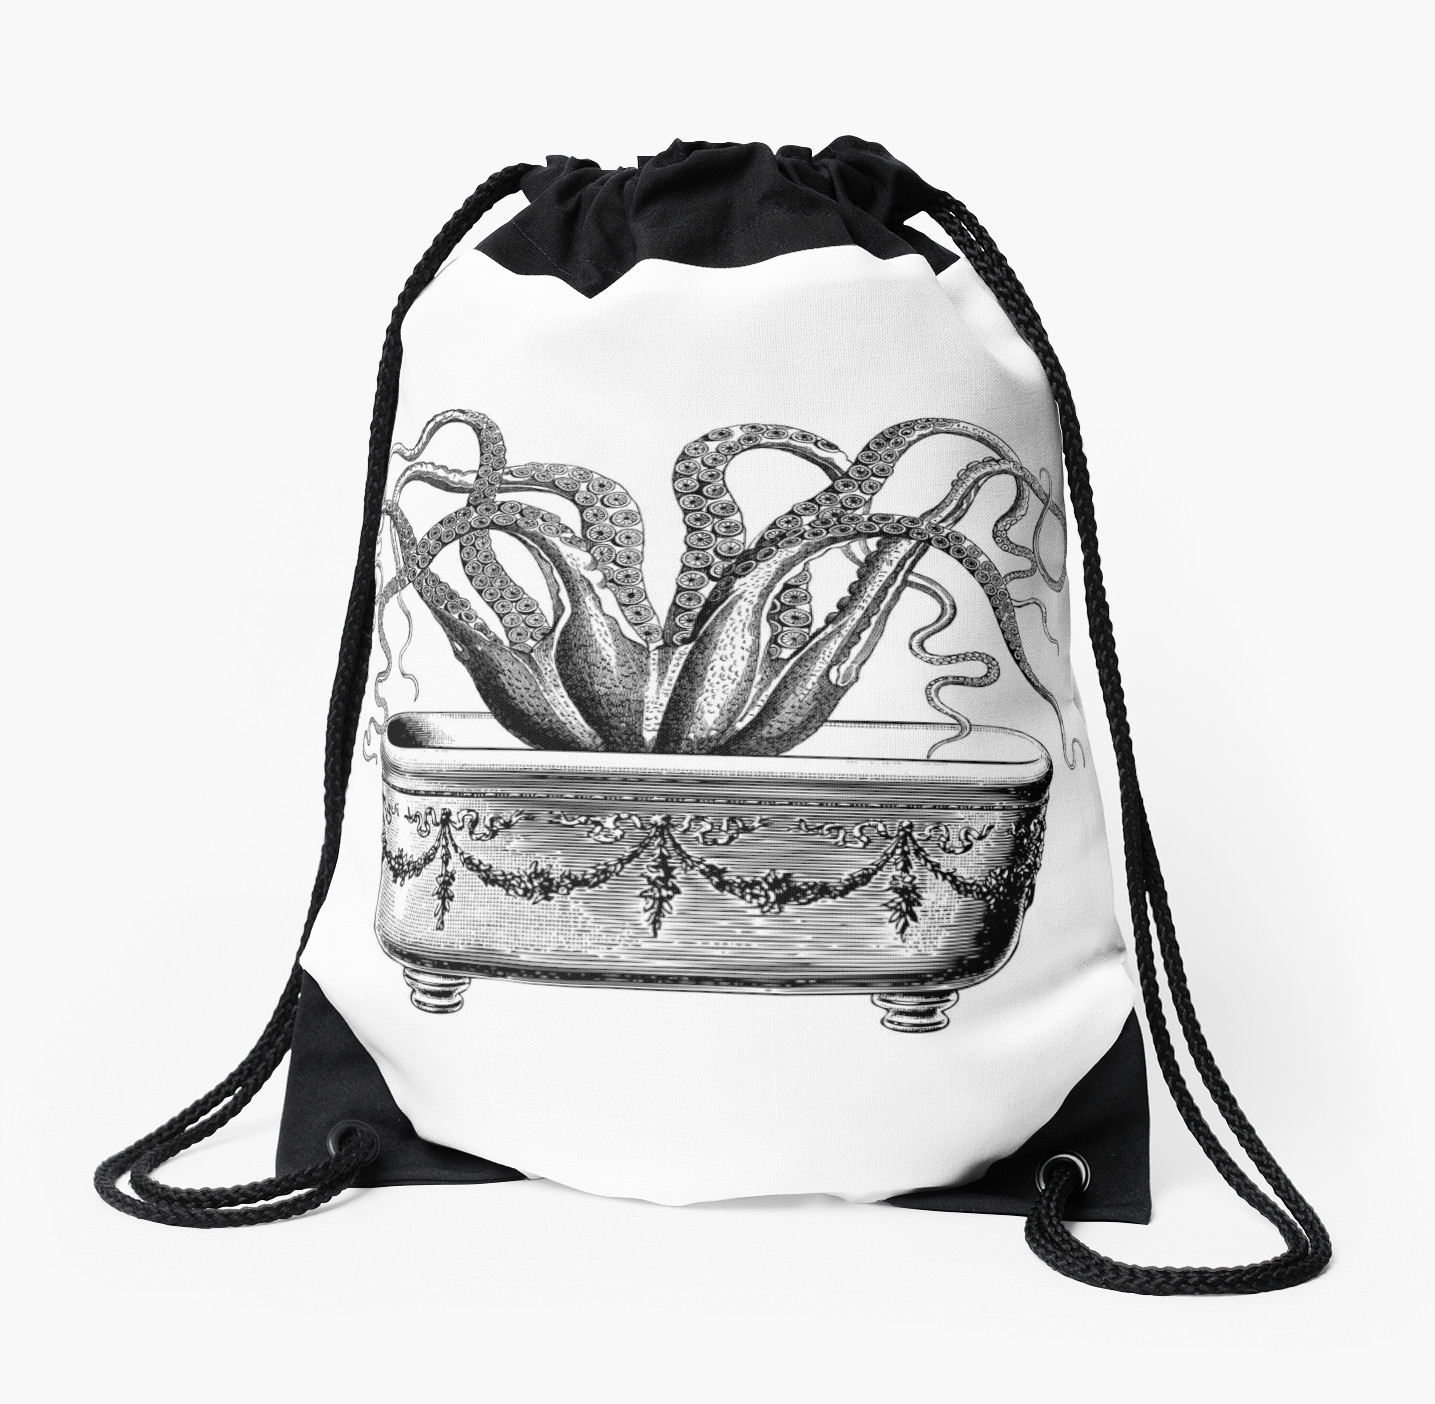 1435x1404 Tentacles In The Tub Octopus Black And White Drawstring Bags